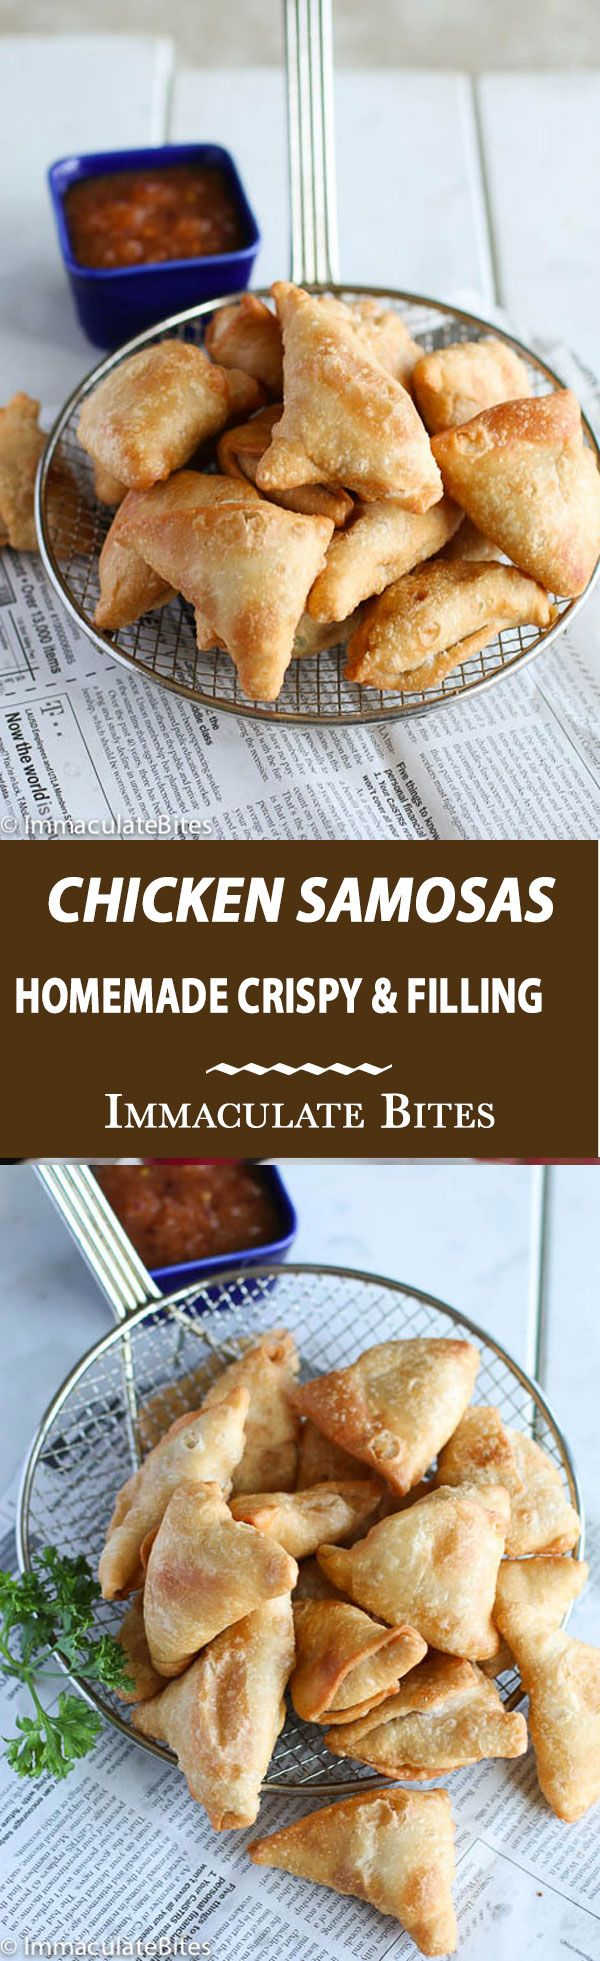 Super Crispy Chicken Samosas full of chicken , peas and spiced up with just enough spices and heat . Step-by-step pictorial!